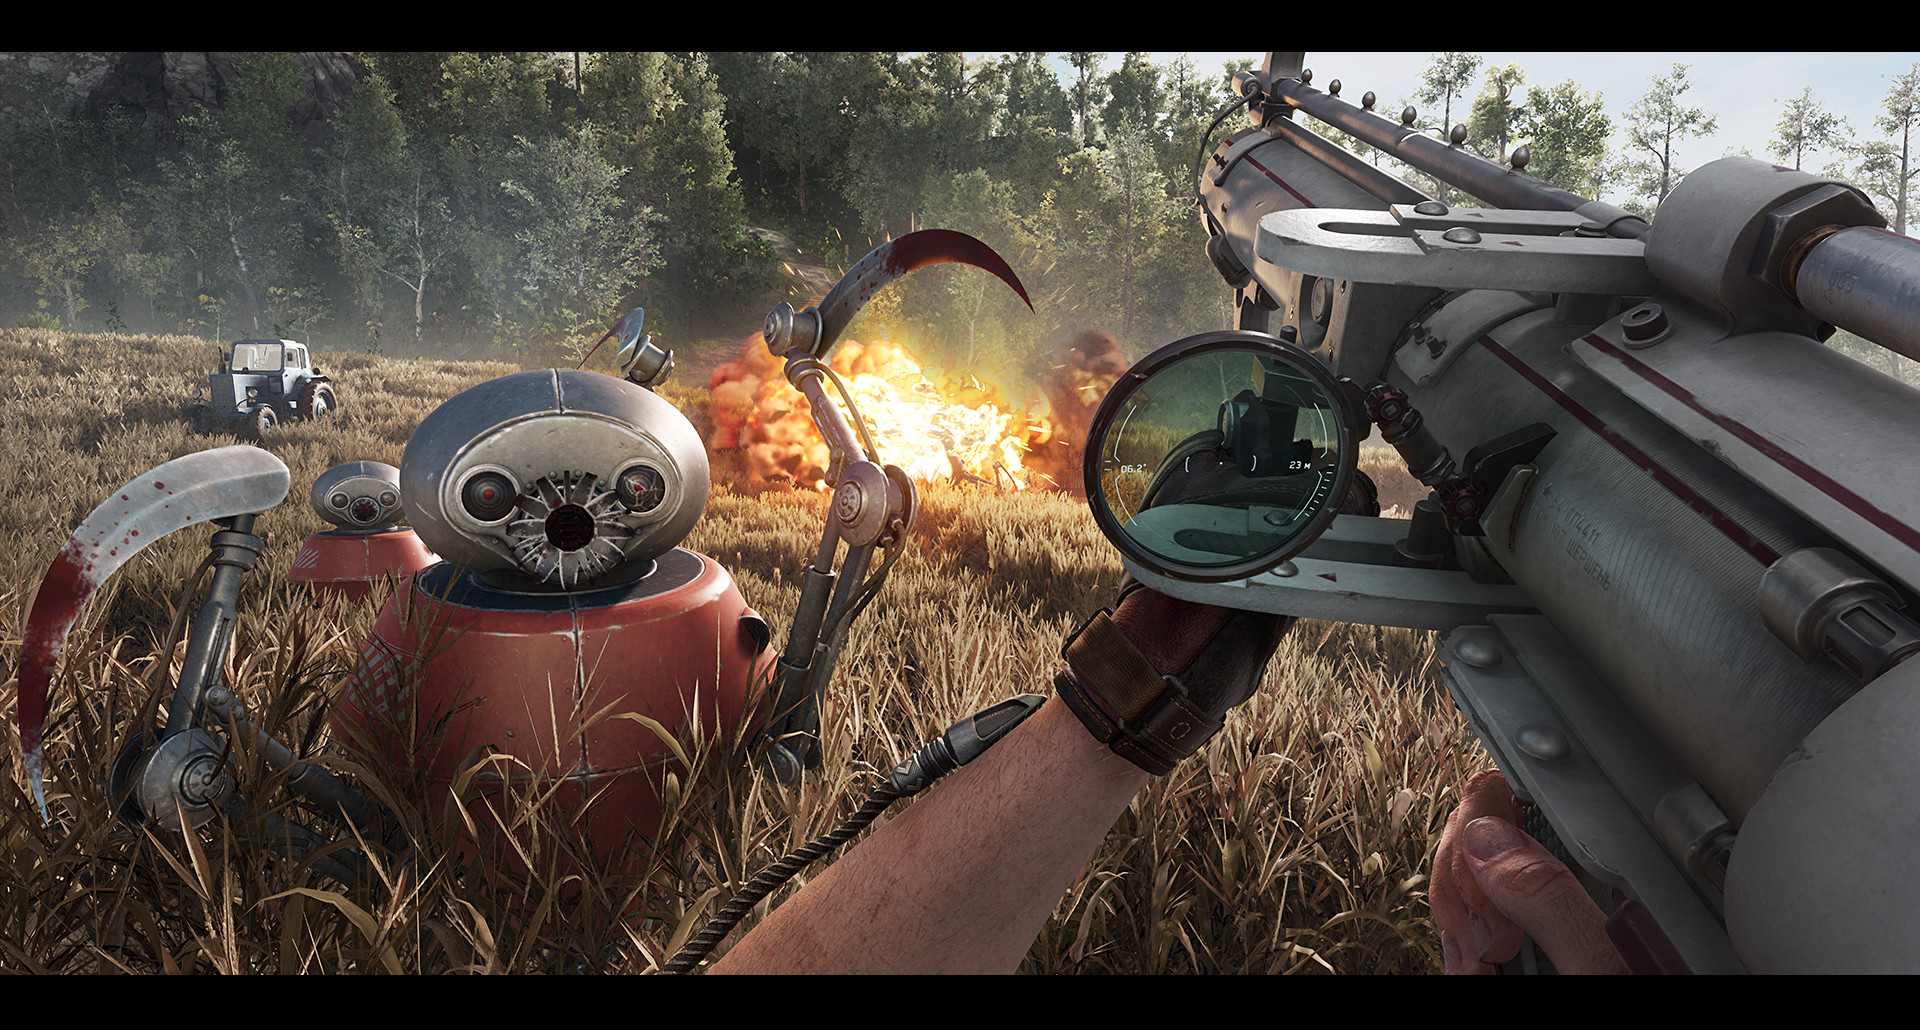 Atomic Heart Sci-Fi RPG: What We Know So Far, Release Date, Plot, Maps